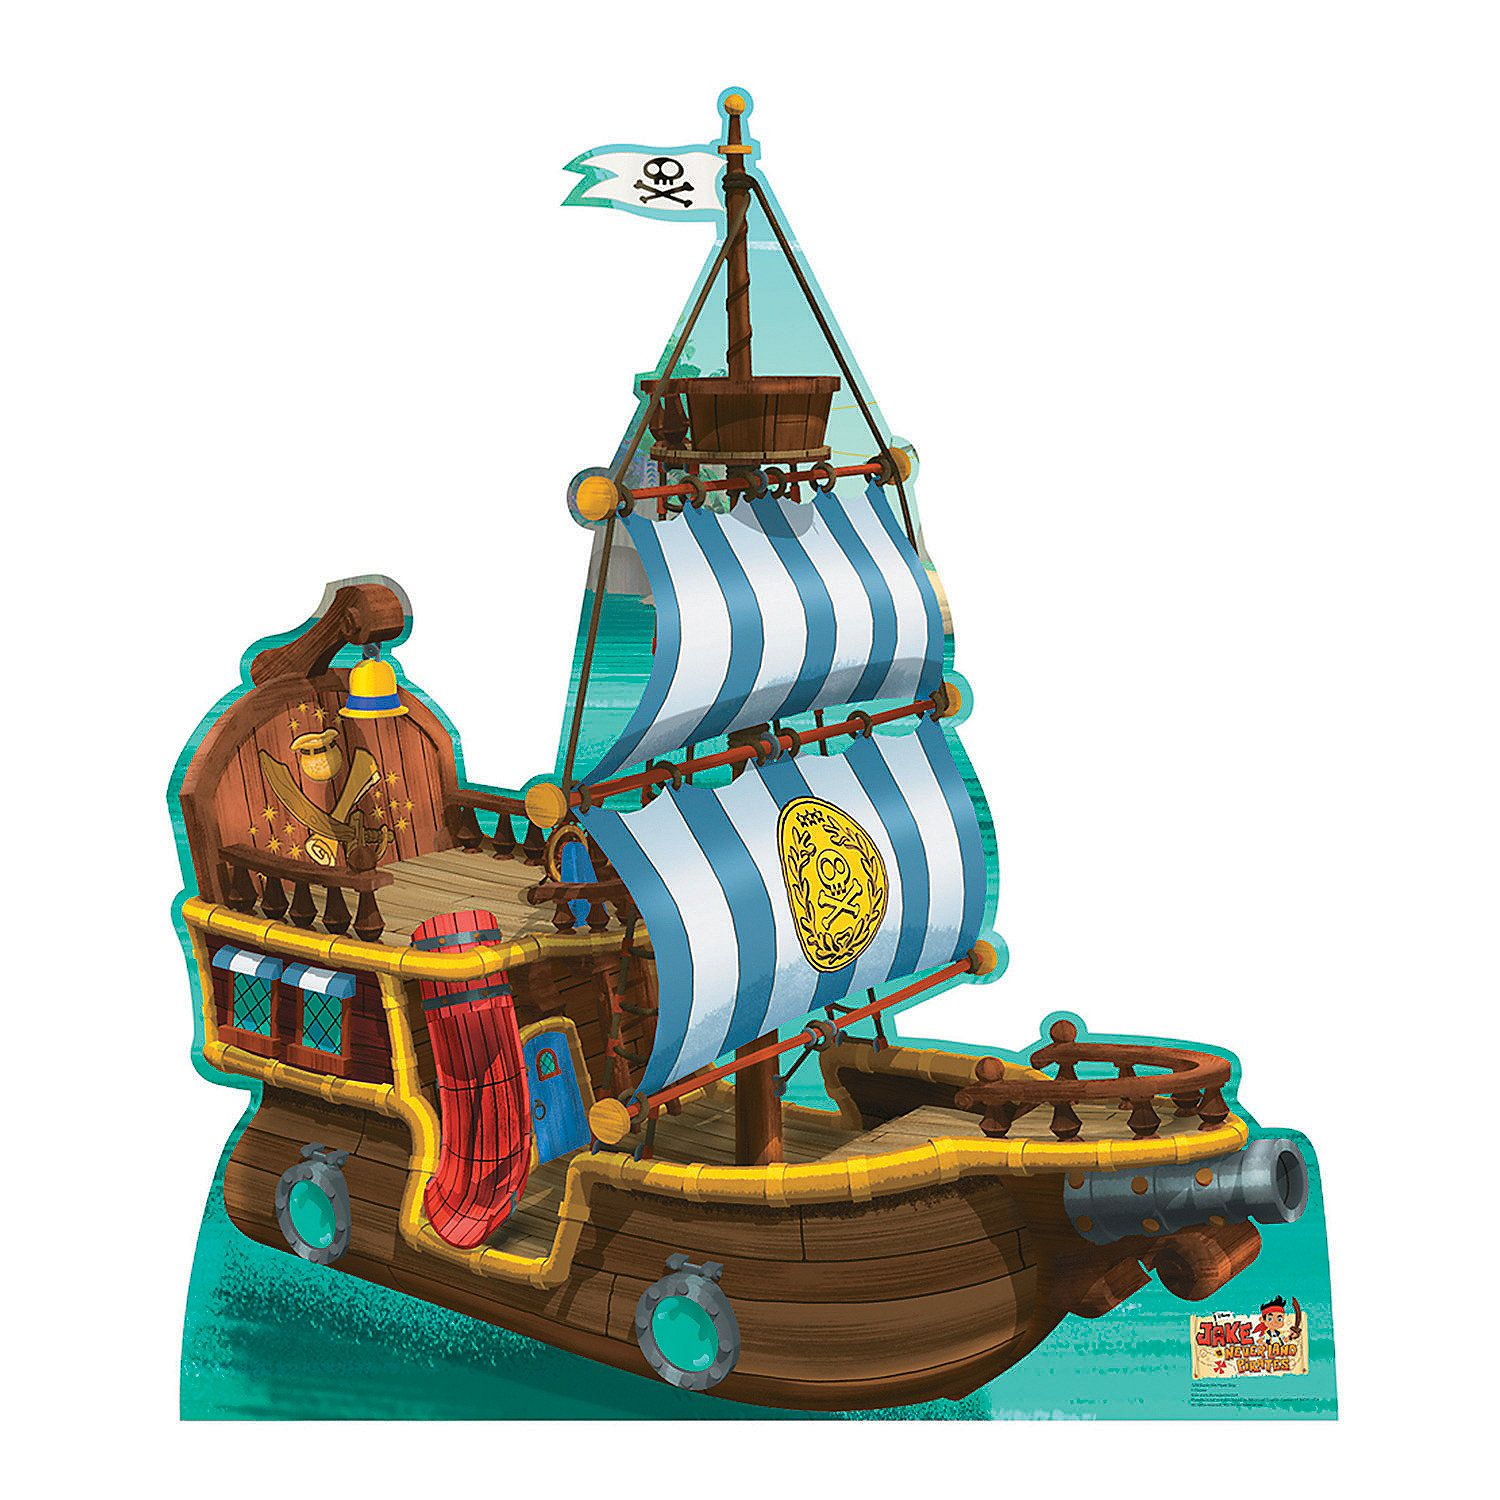 Jake & the Never Land Pirates Bucky Pirate Ship Cardboard Stand-Up ...